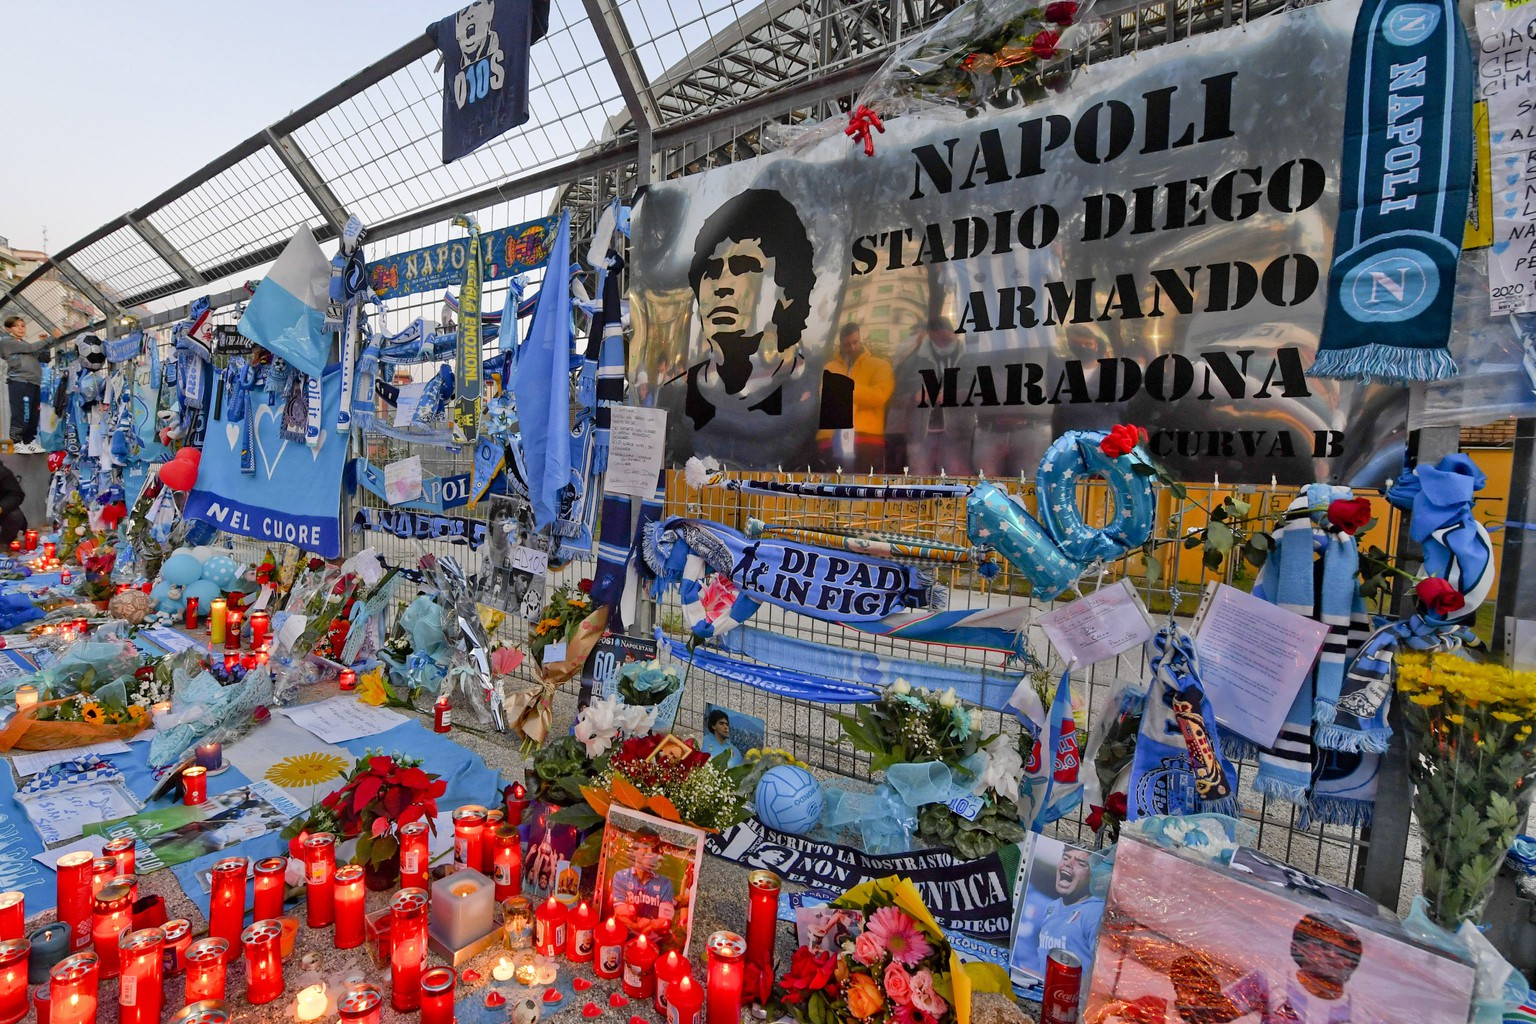 epa08844114 Napoli fans pay tribute to late Argentinian soccer legend Diego Armando Maradona outside the San Paolo stadium prior to the UEFA Europa League group F soccer match between SSC Napoli and HNK Rijeka in Naples, Italy, 26 November 2020. Diego Maradona has died after a heart attack on 25 November 2020. The Argentine soccer great was among the best players ever and who led his country to the 1986 World Cup title before later struggling with cocaine use and obesity. He was 60.  EPA/CIRO FUSCO